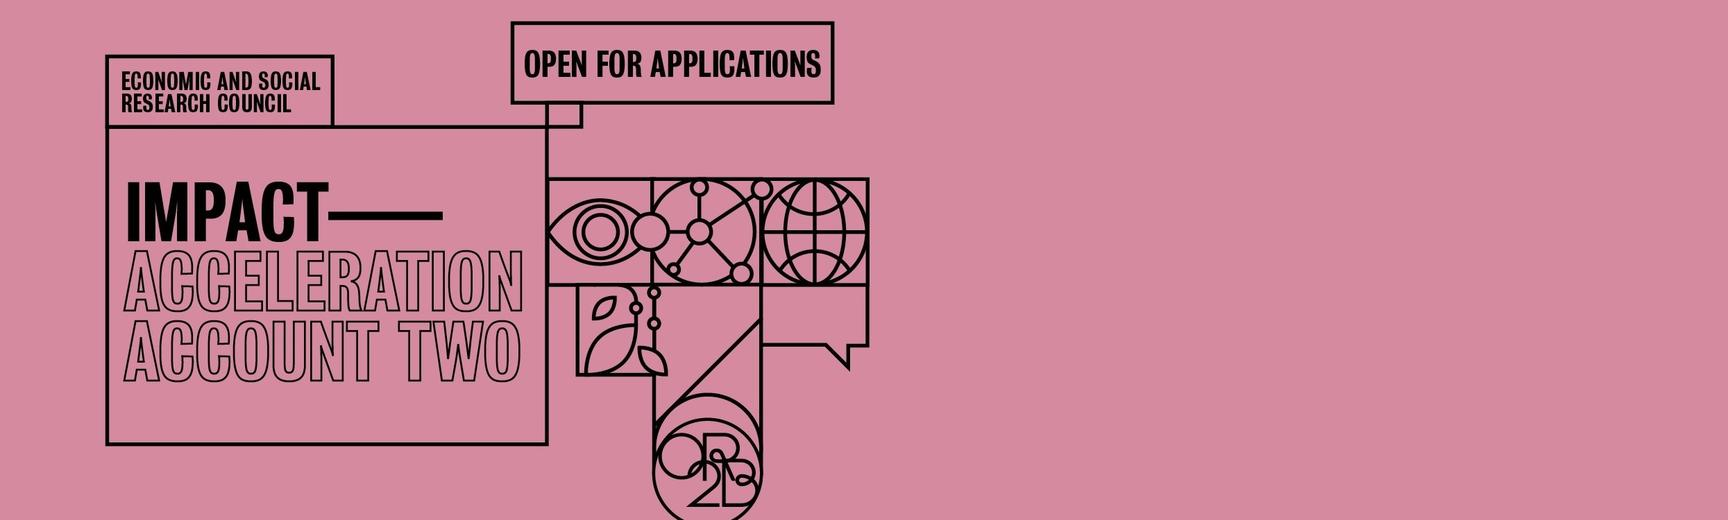 iaa call for applications postcard  banner final